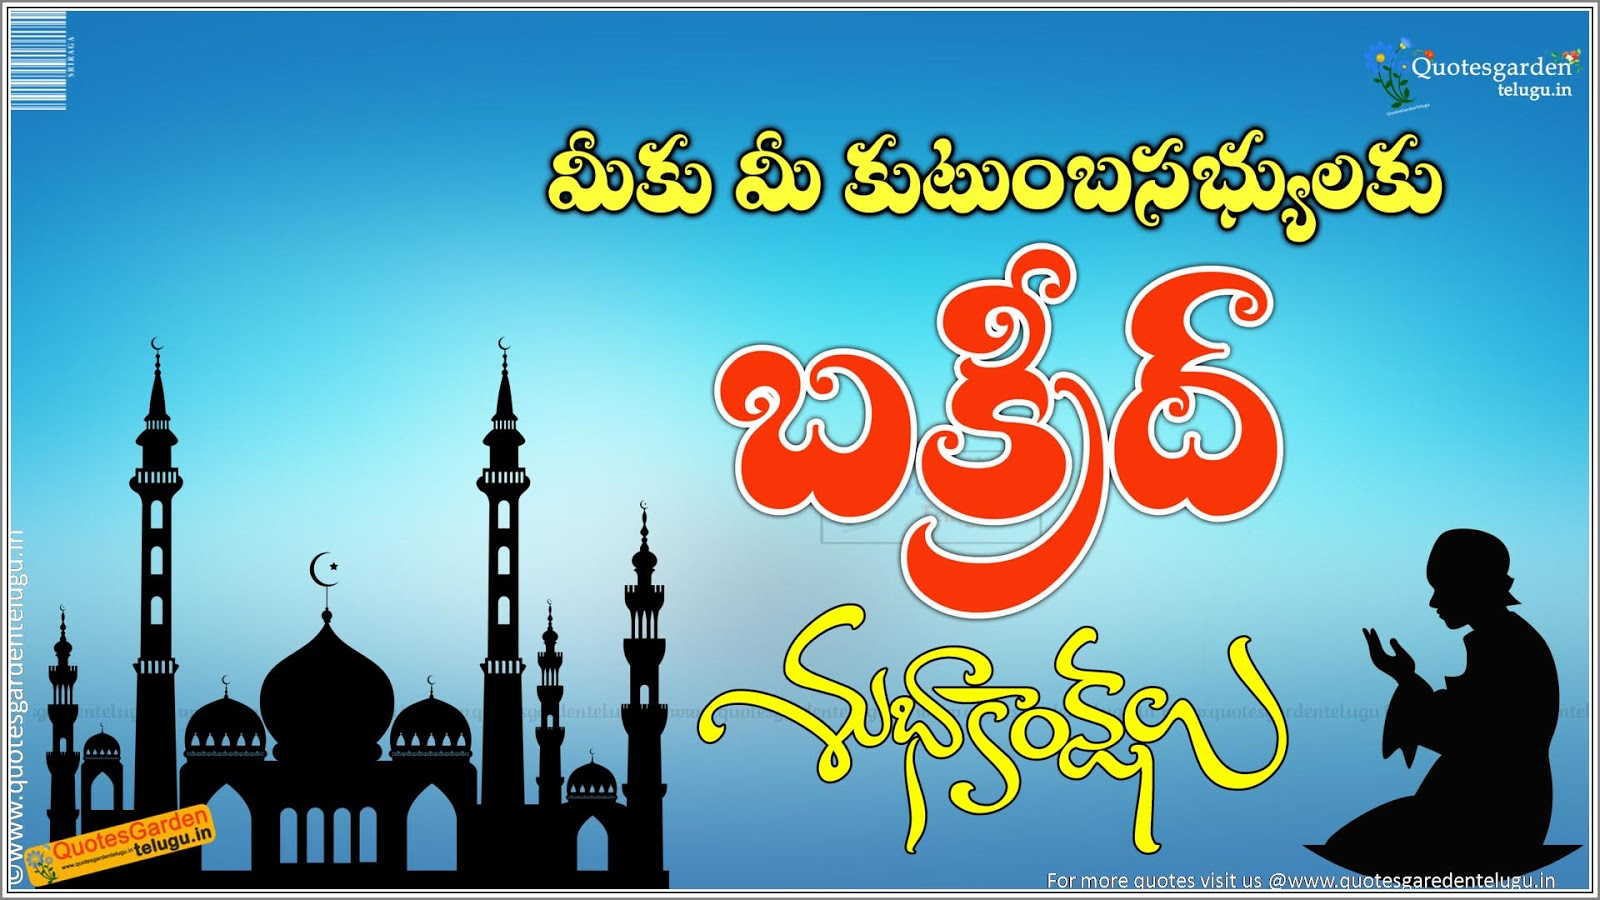 Beautiful Heart Touching Quotes Wallpapers Bakrid 2016 Telugu Greetings Wishes Quotes Quotes Garden